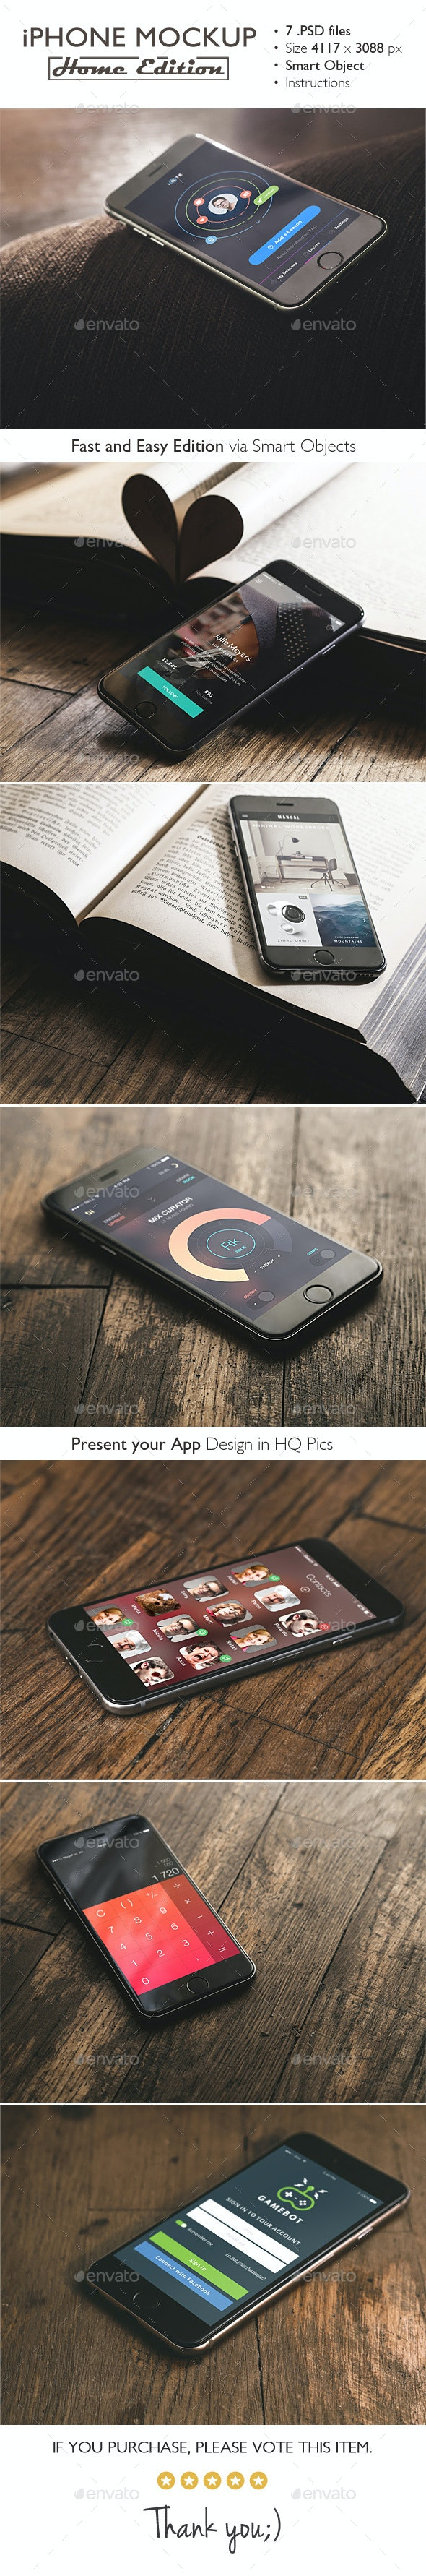 iPhone 6 Mockup Home Edition - Product Mock-Ups Graphics